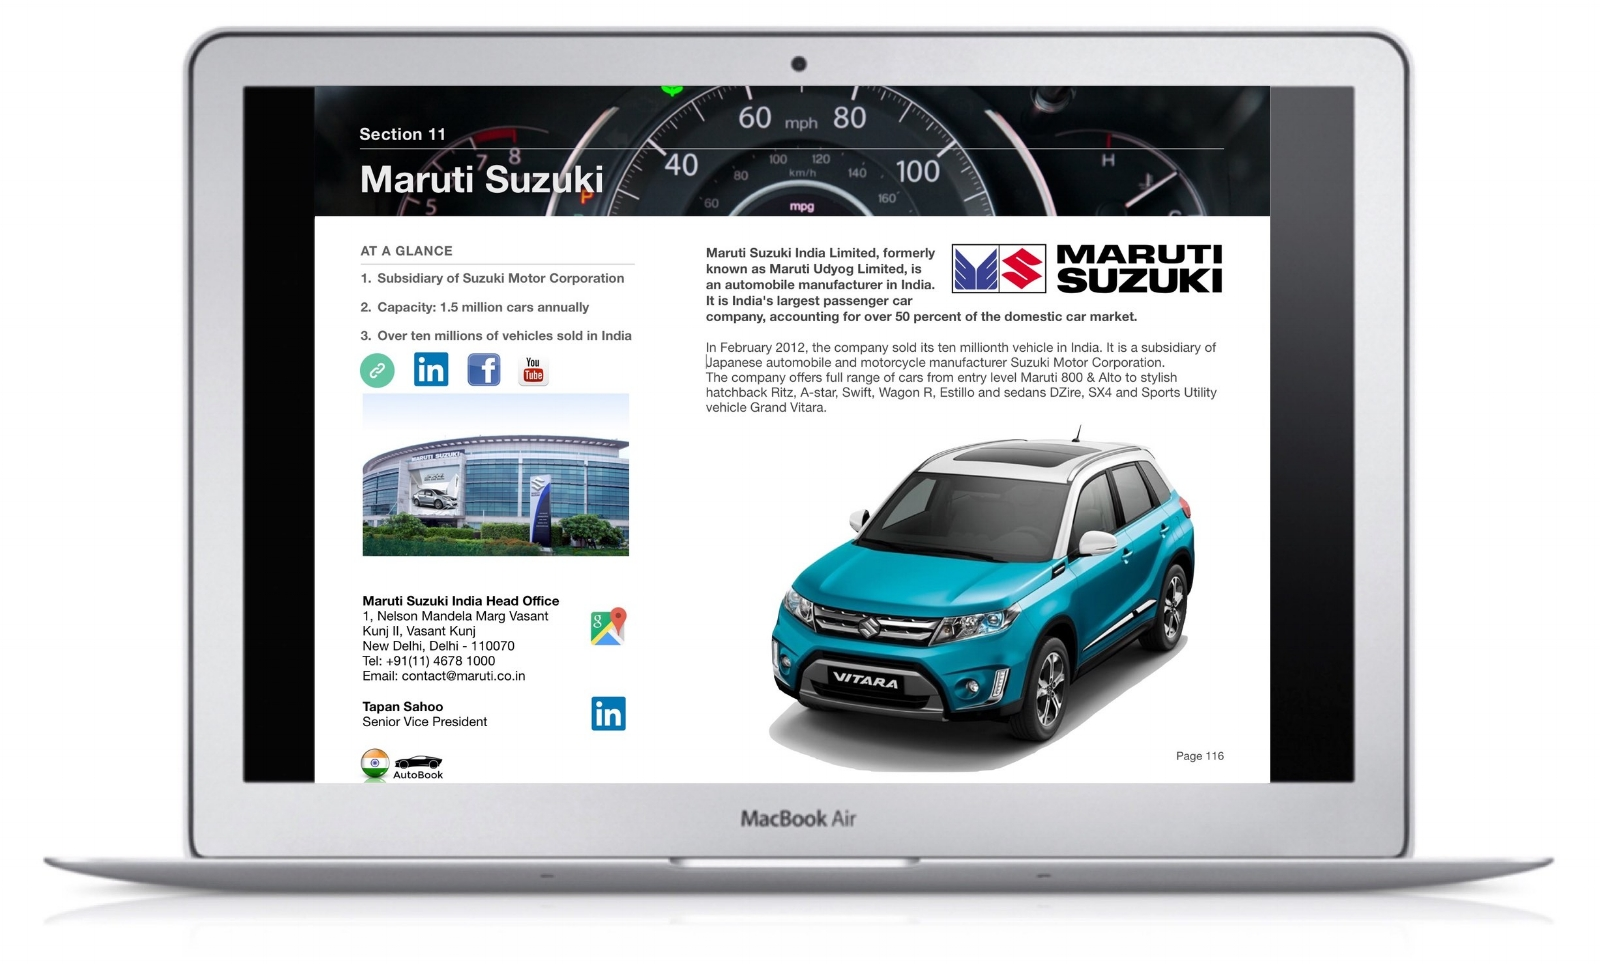 The India AutoBook includes company profiles of OEM car makers, Multinationals and Indian automotive parts suppliers as well as organizations, media and exhibitions.